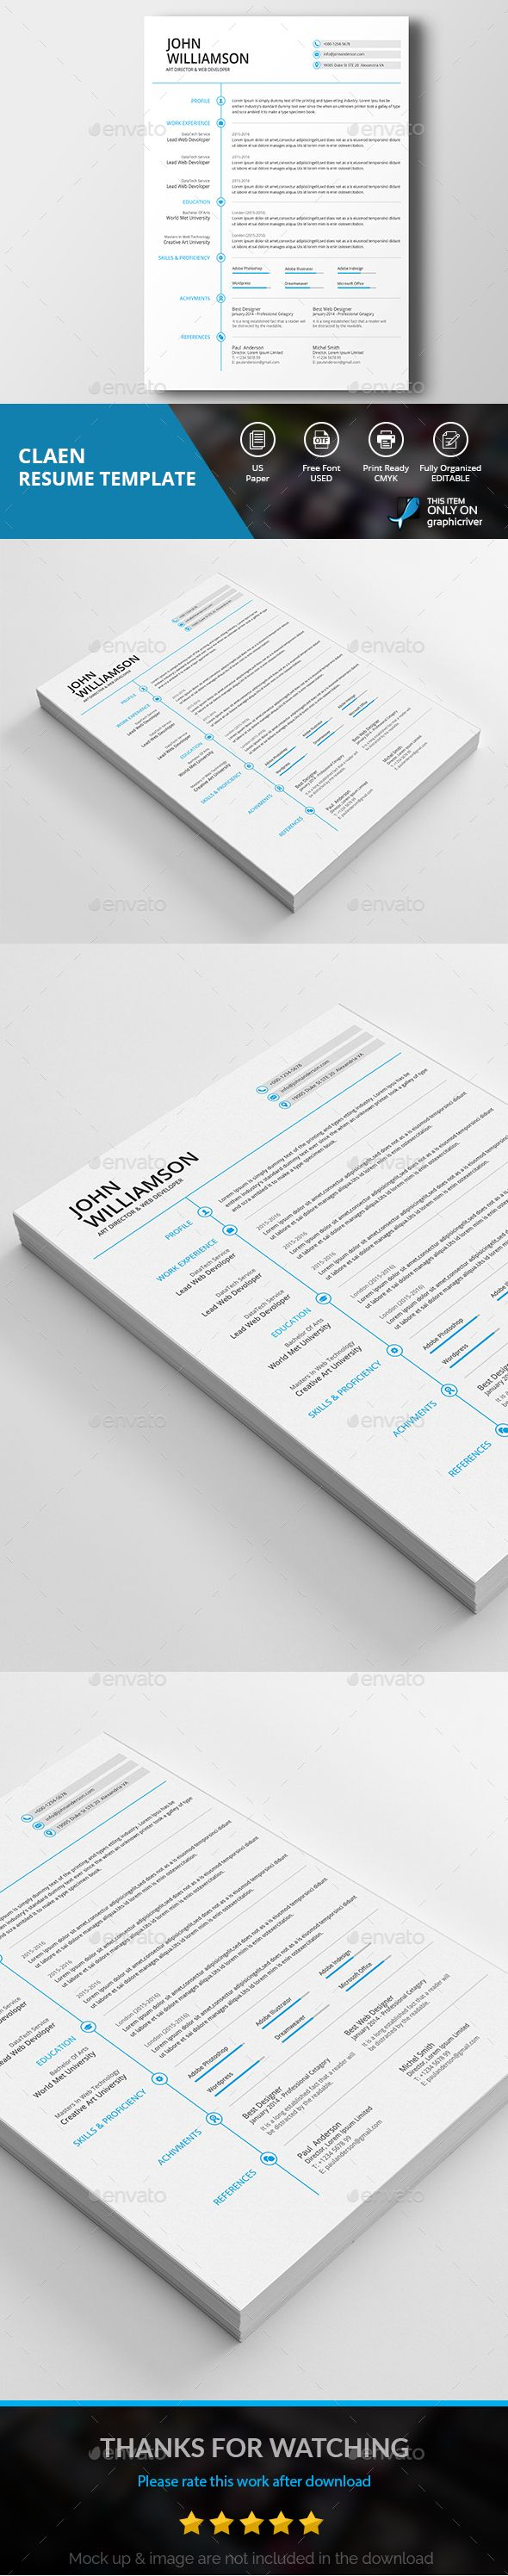 download job resume format%0A Resume CV  Bailey by bilmaw creative on Creative Market   RESUME    Pinterest   Resume cv